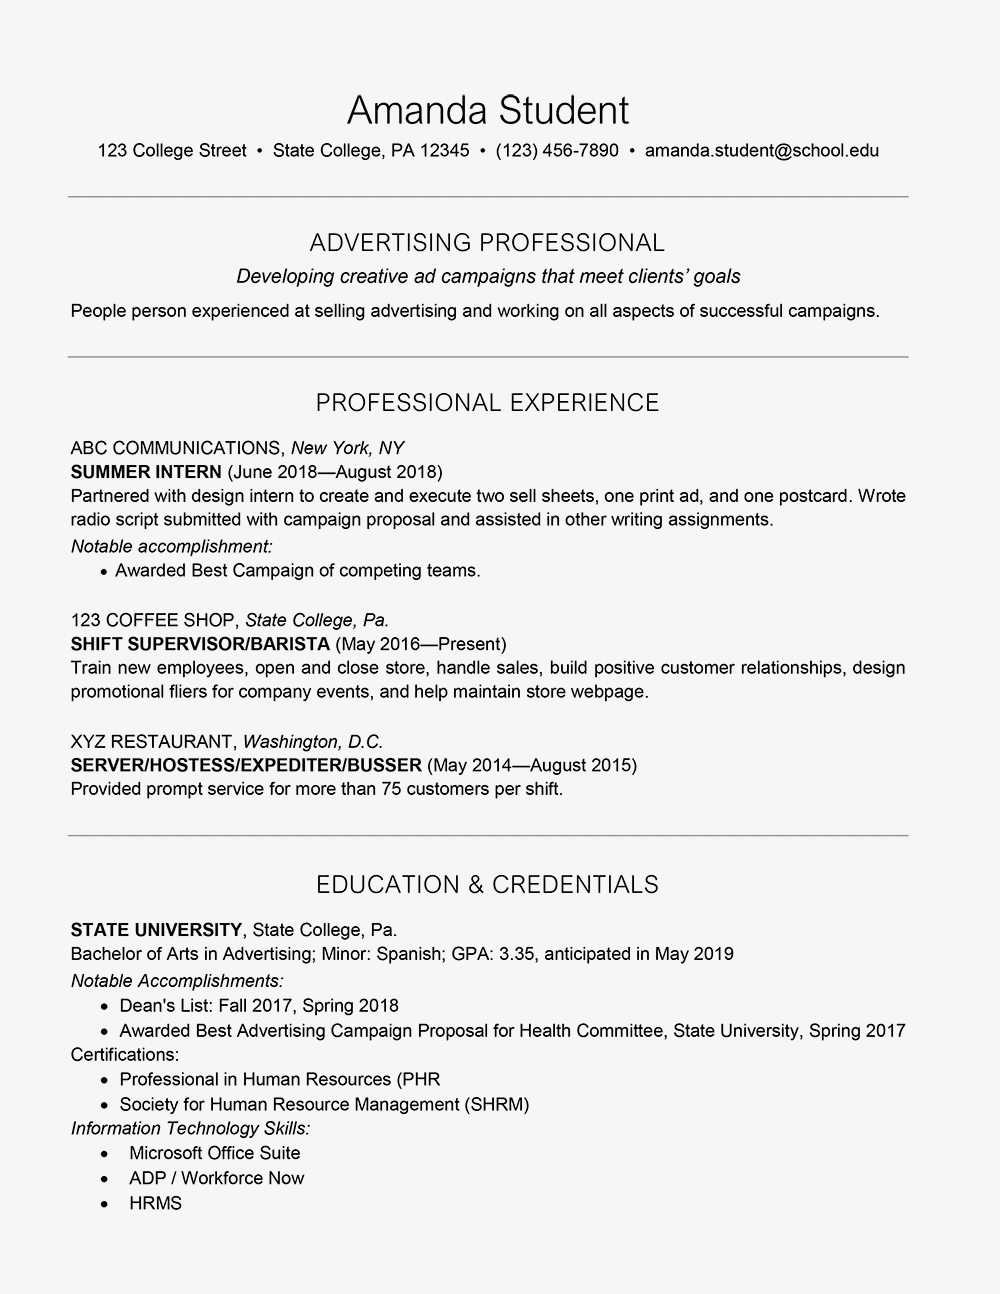 resume to get into college